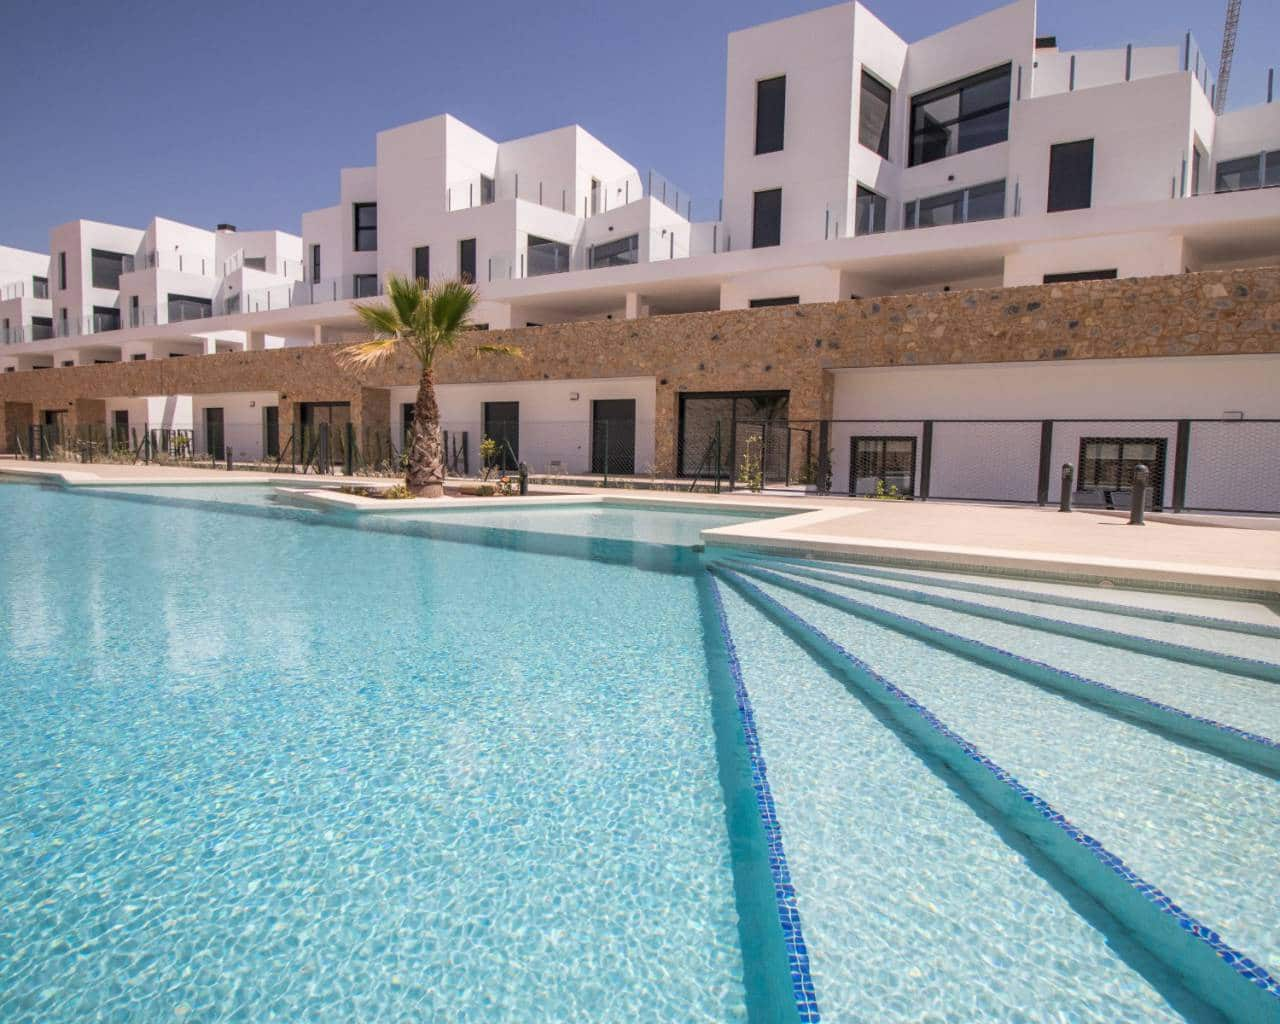 2 bedroom Apartment for sale in Villamartin with pool garage - € 169,000 (Ref: 4300998)